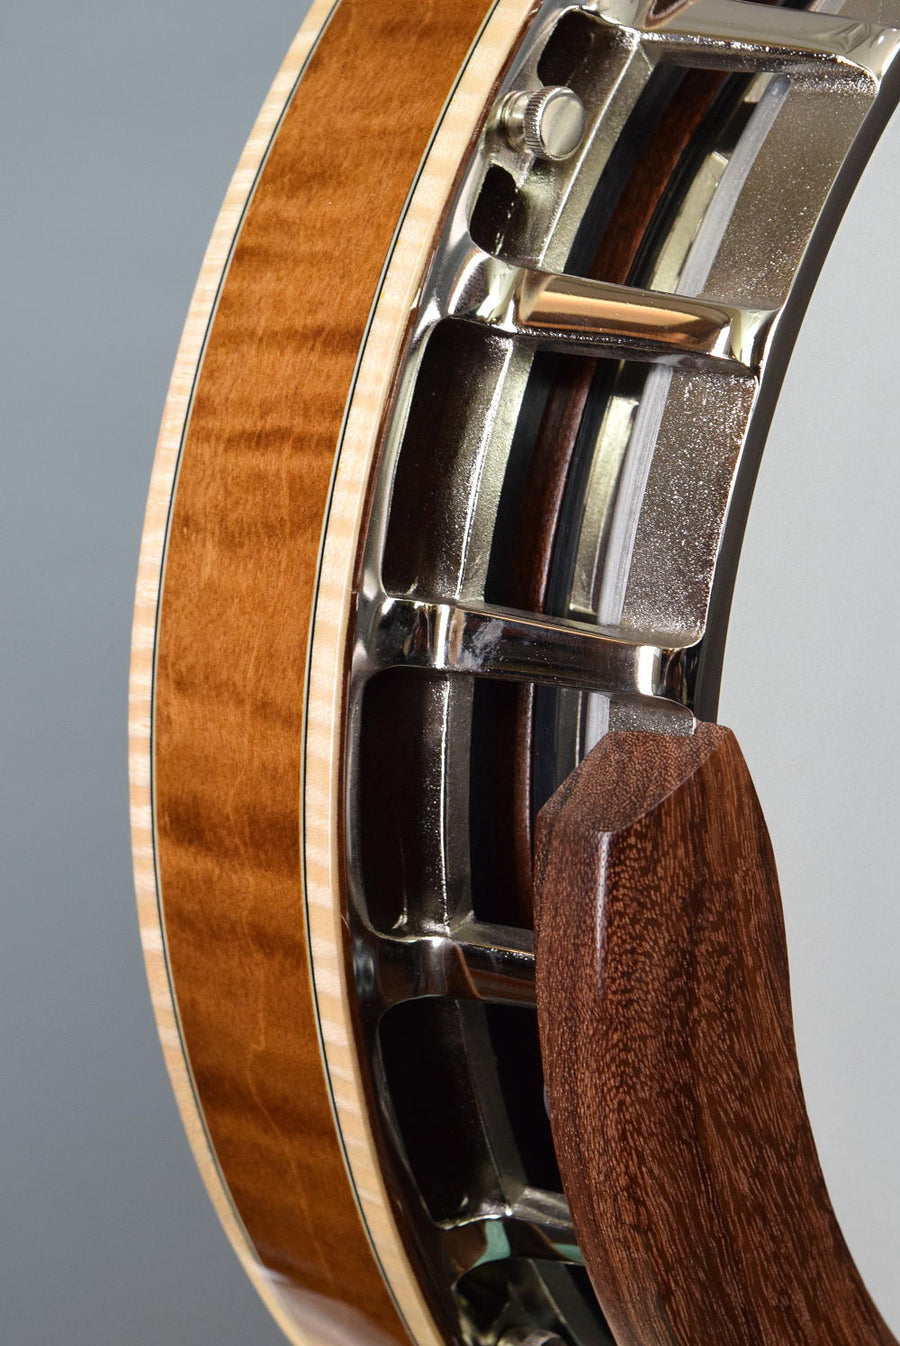 Nechville Orion Resonator Banjo